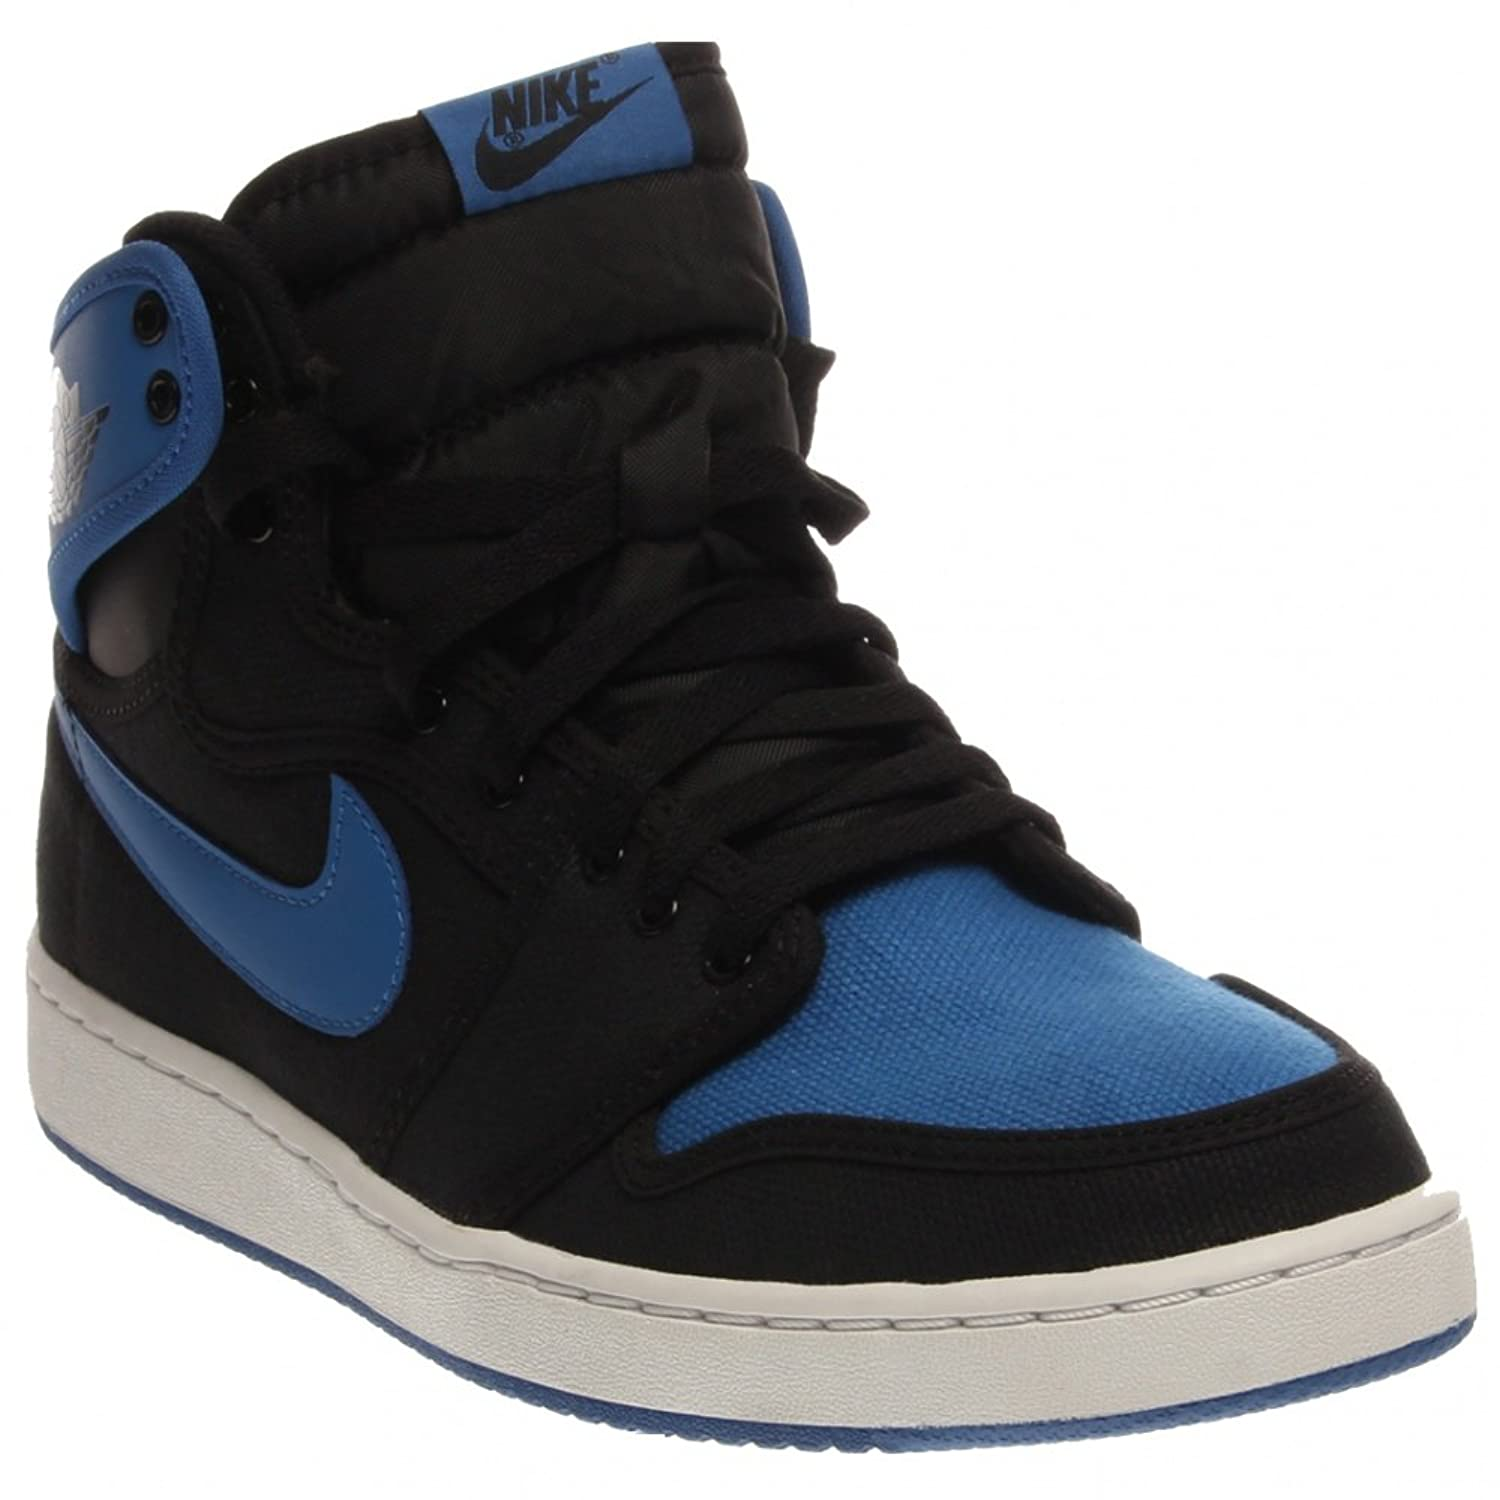 Mens Nike Jordan Shoes Uk